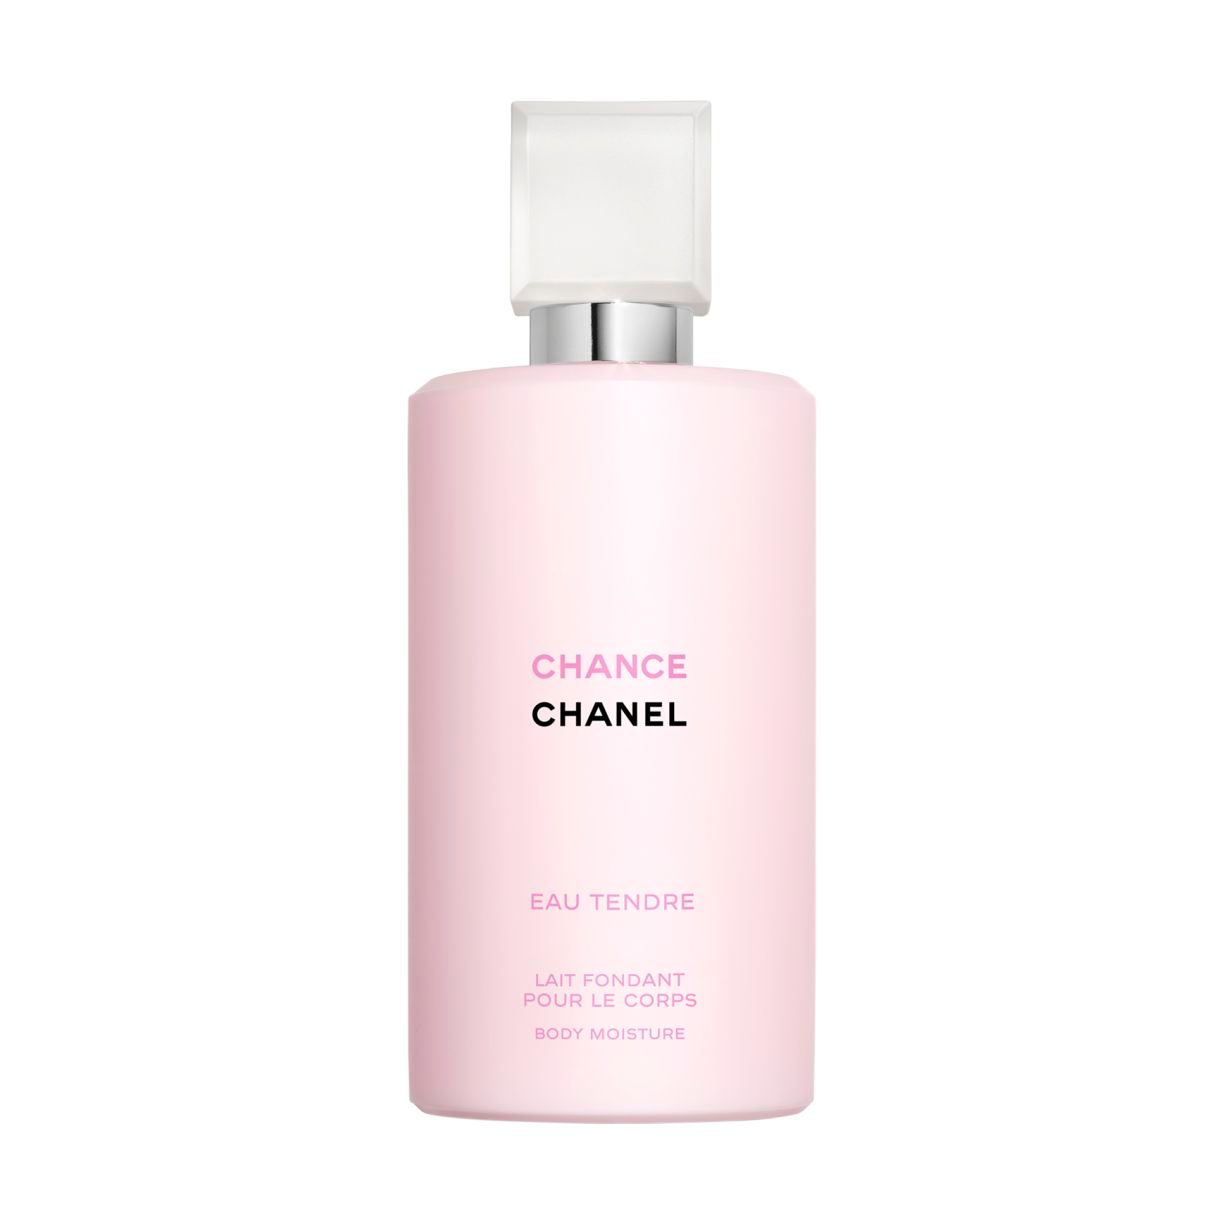 CHANCE EAU TENDRE SMELTZACHTE BODYMILK